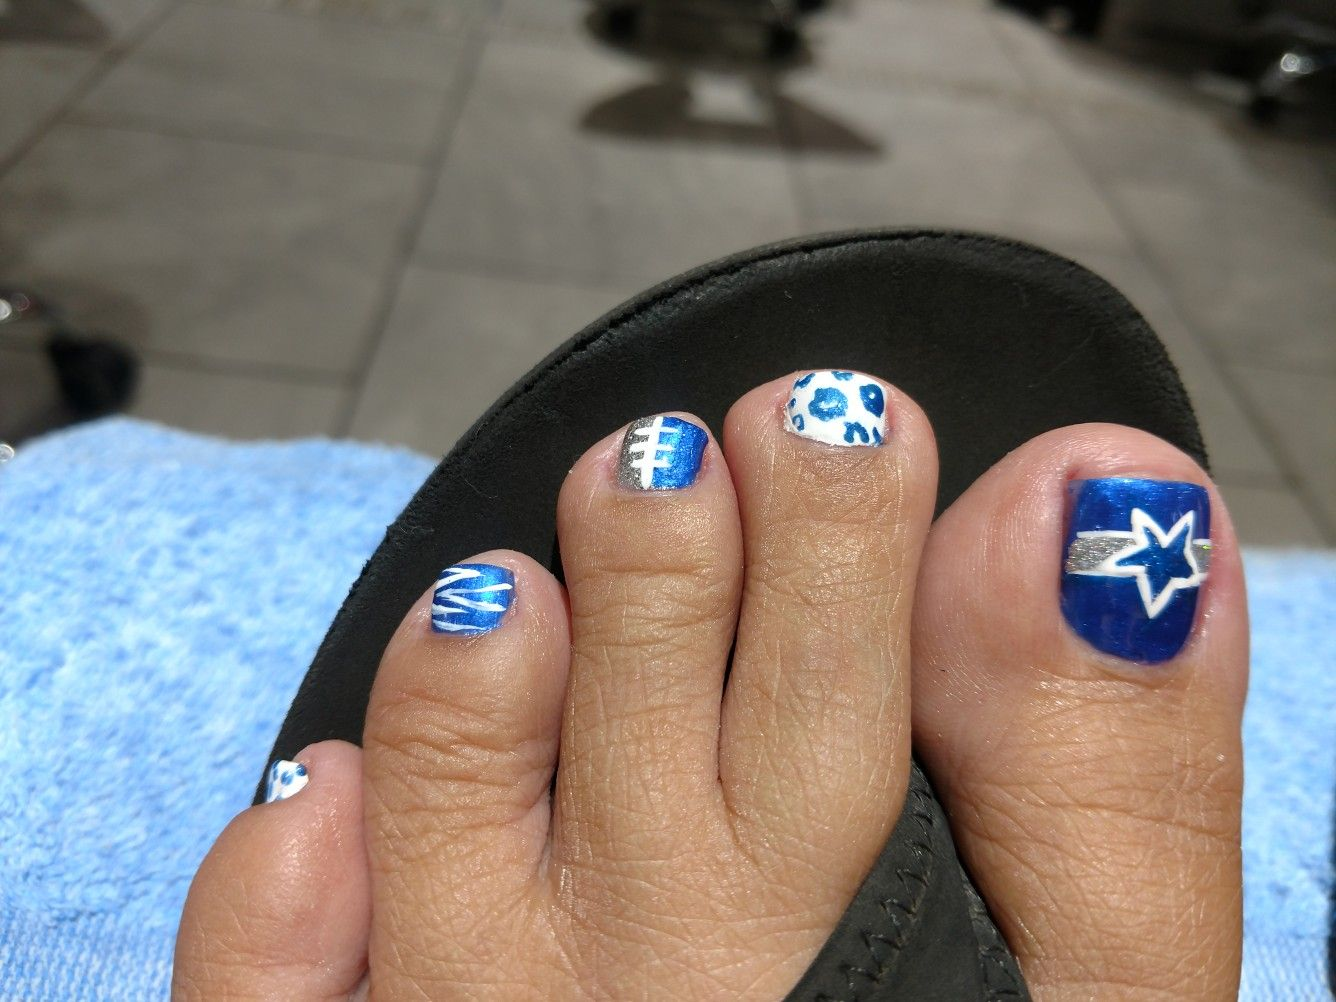 DALLAS COWBOYS toenails! My favorite time of year is football season ...